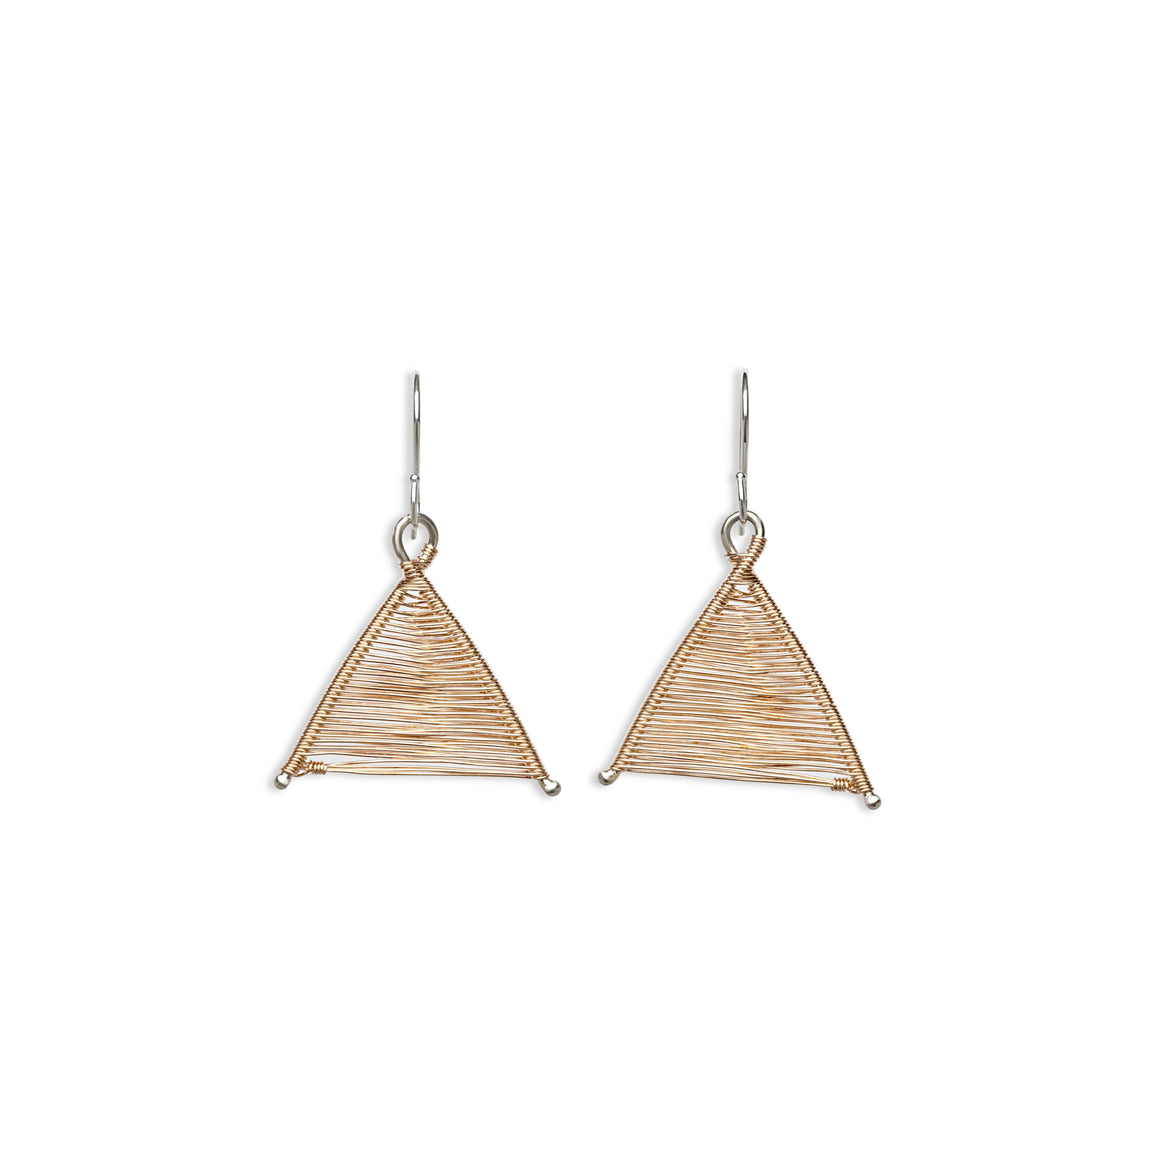 Original Sin Jewelry's Handmade Woven Wishbone Silver and Rose Gold Mixed Metal Dangle Triangle Earrings